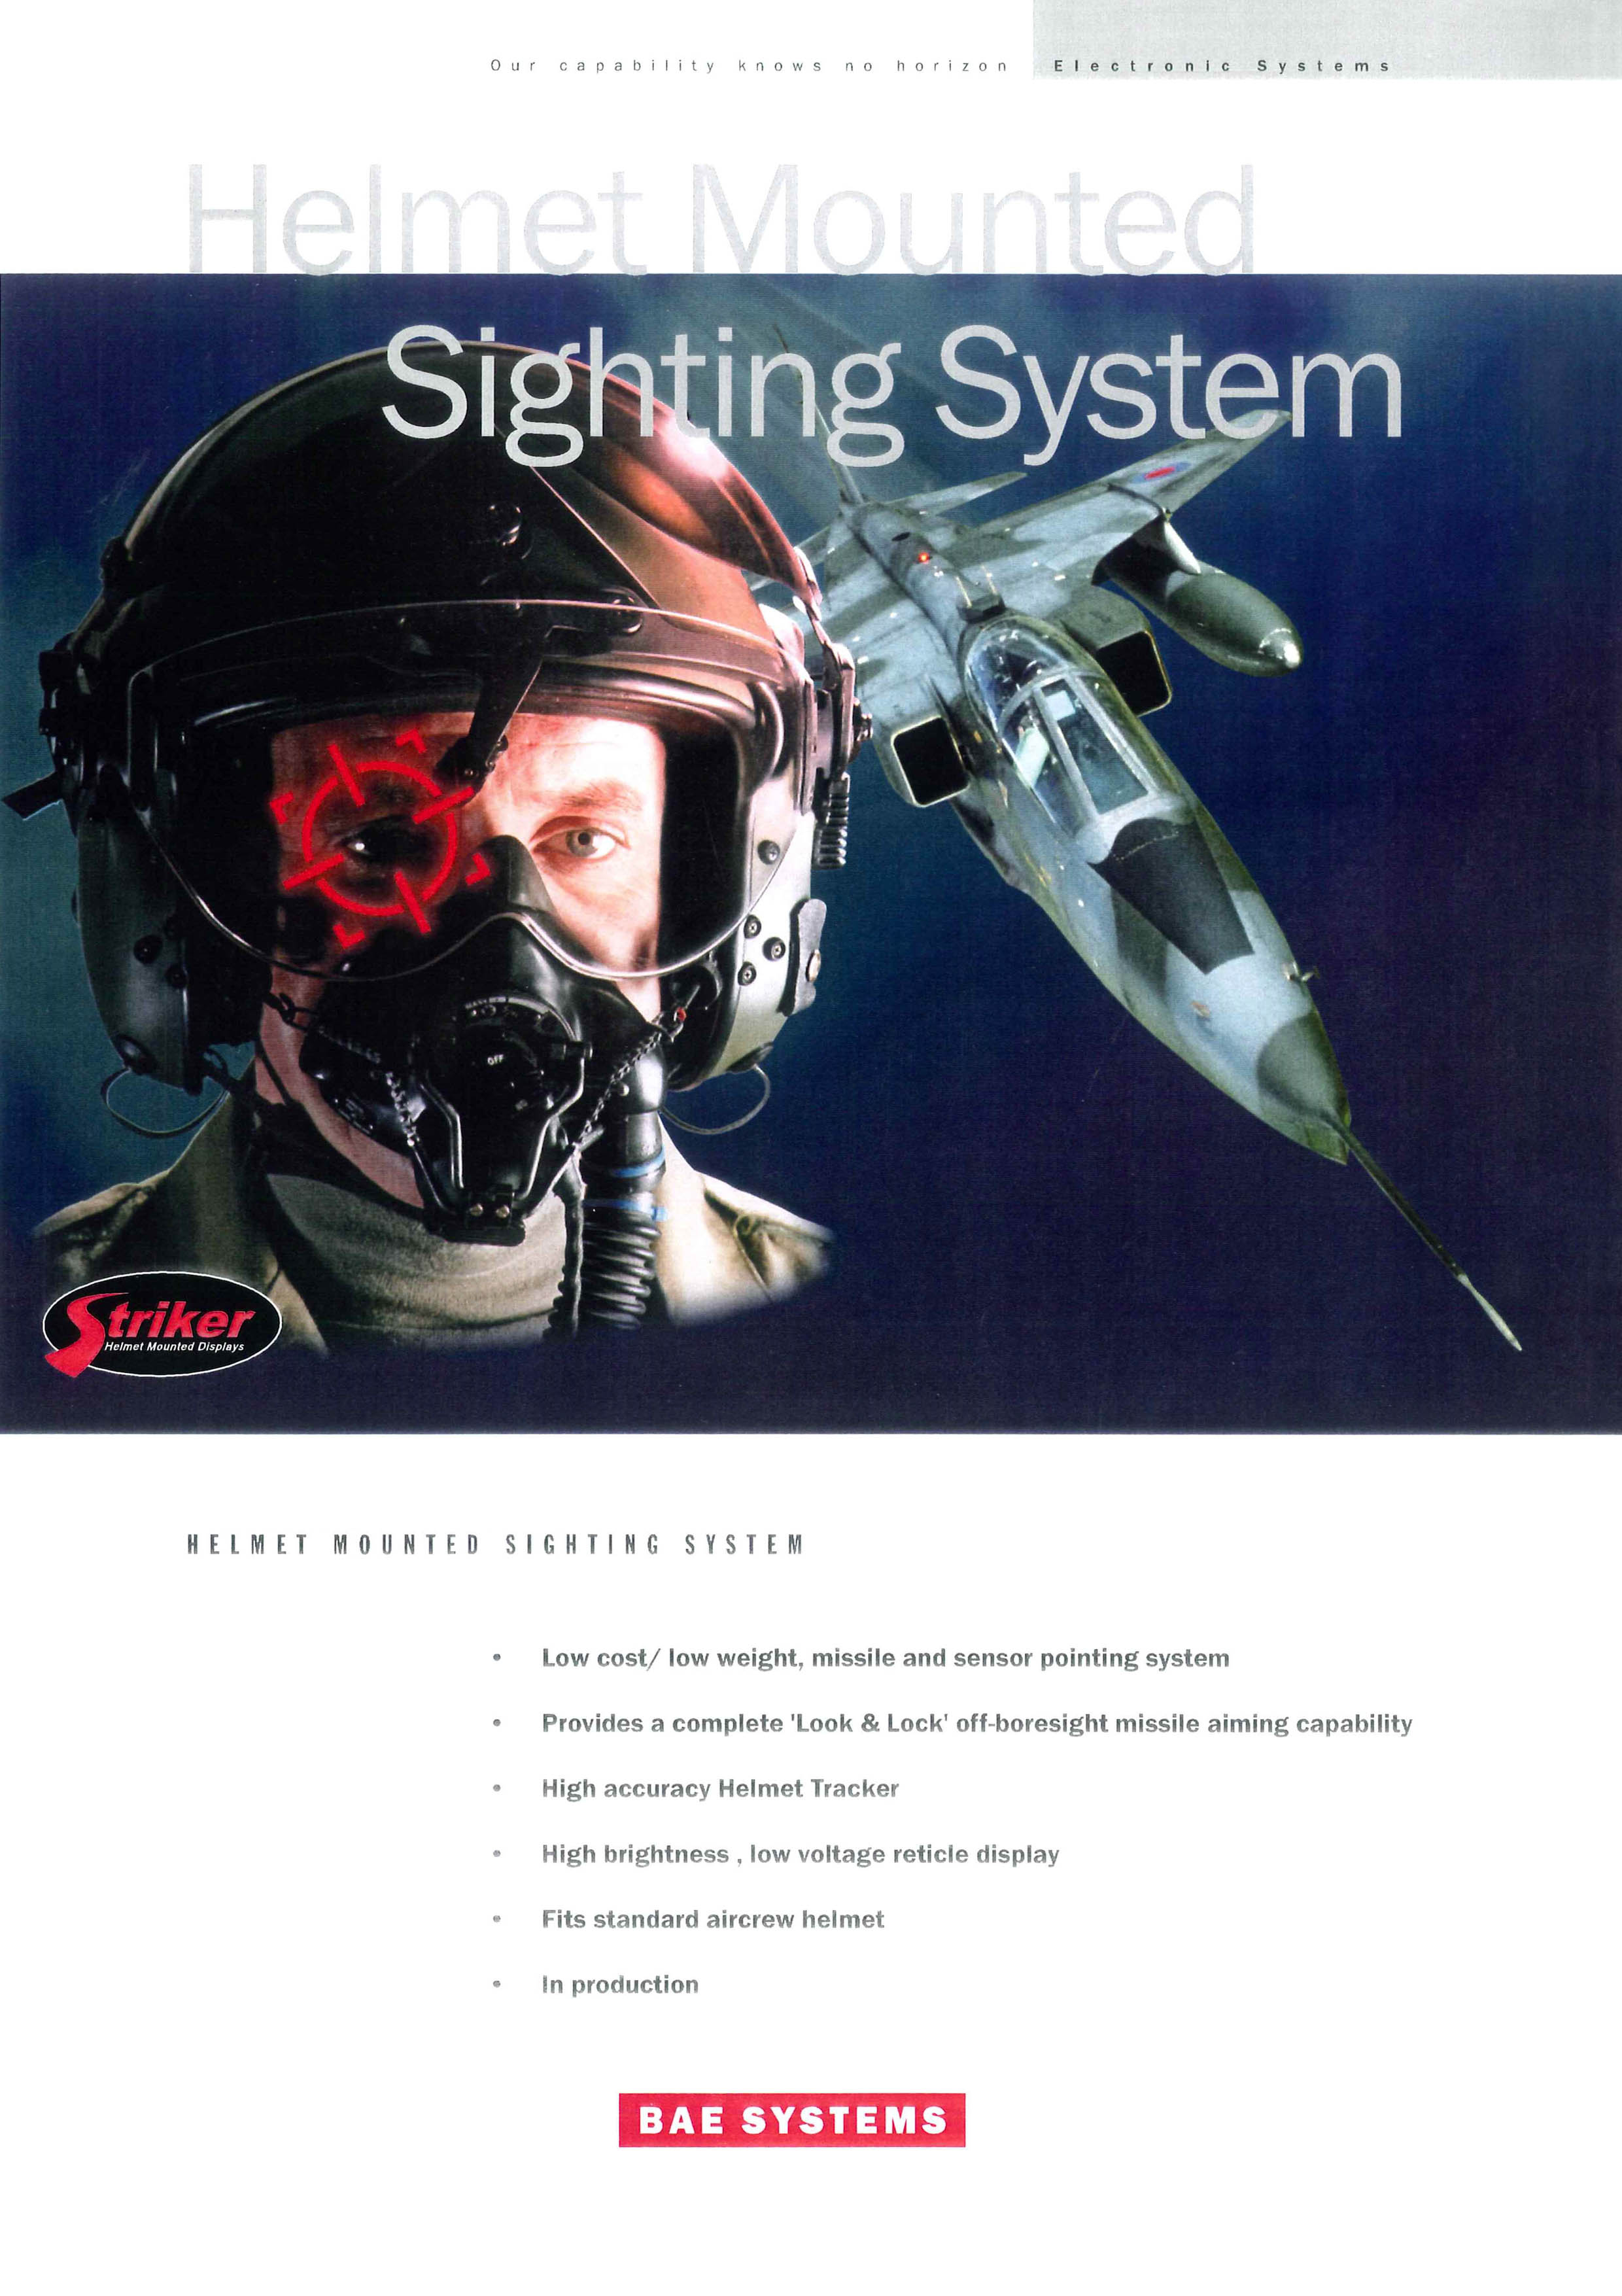 Helmet Mounted Sighting System (HMSS)